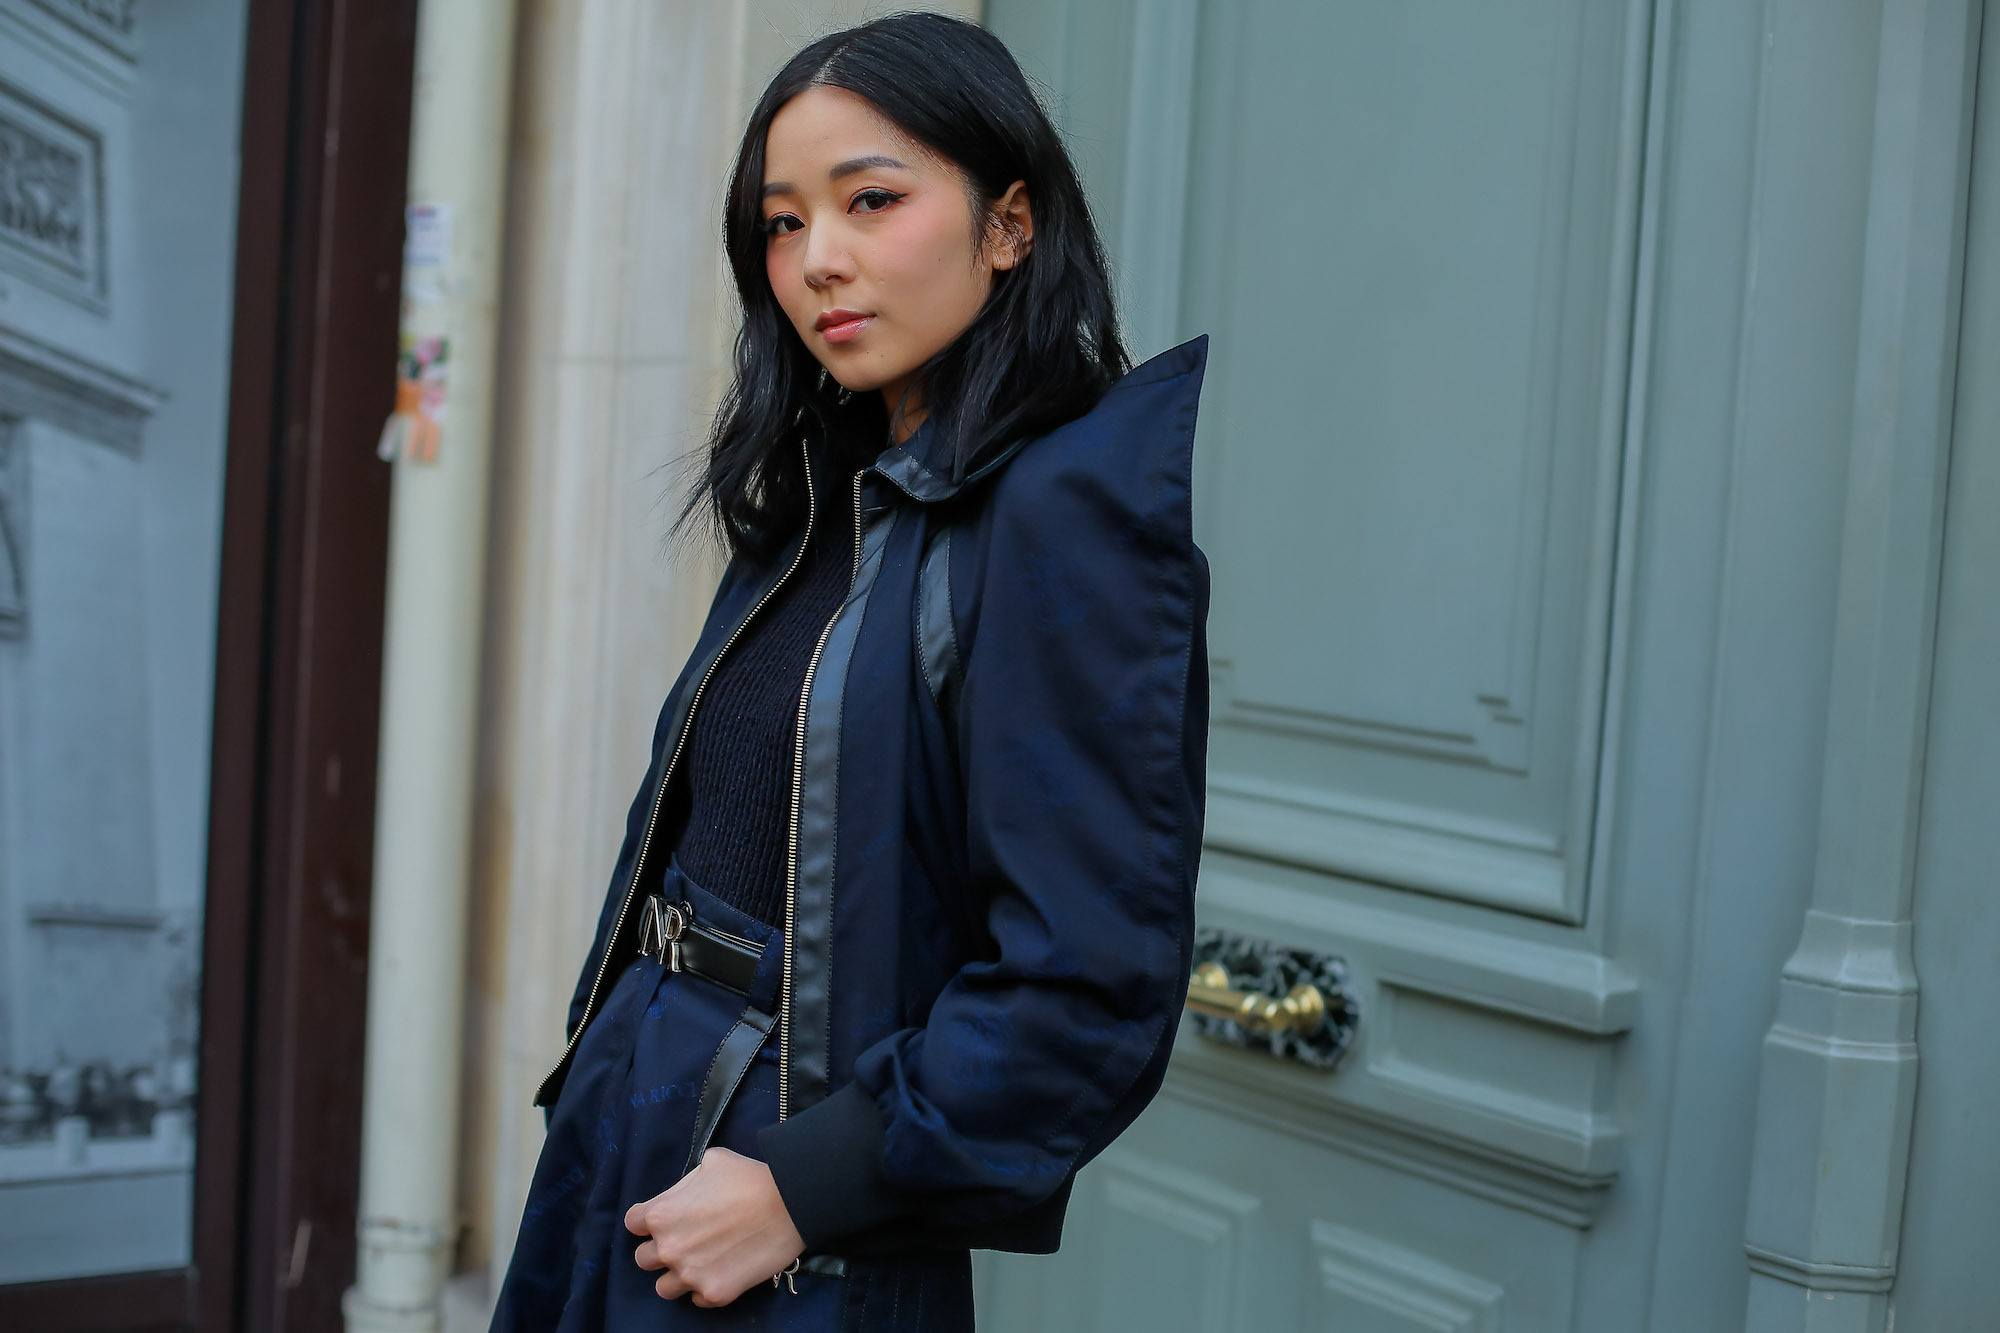 Bob panjang warna hitam StreetDay4 Paris Fashion Week.